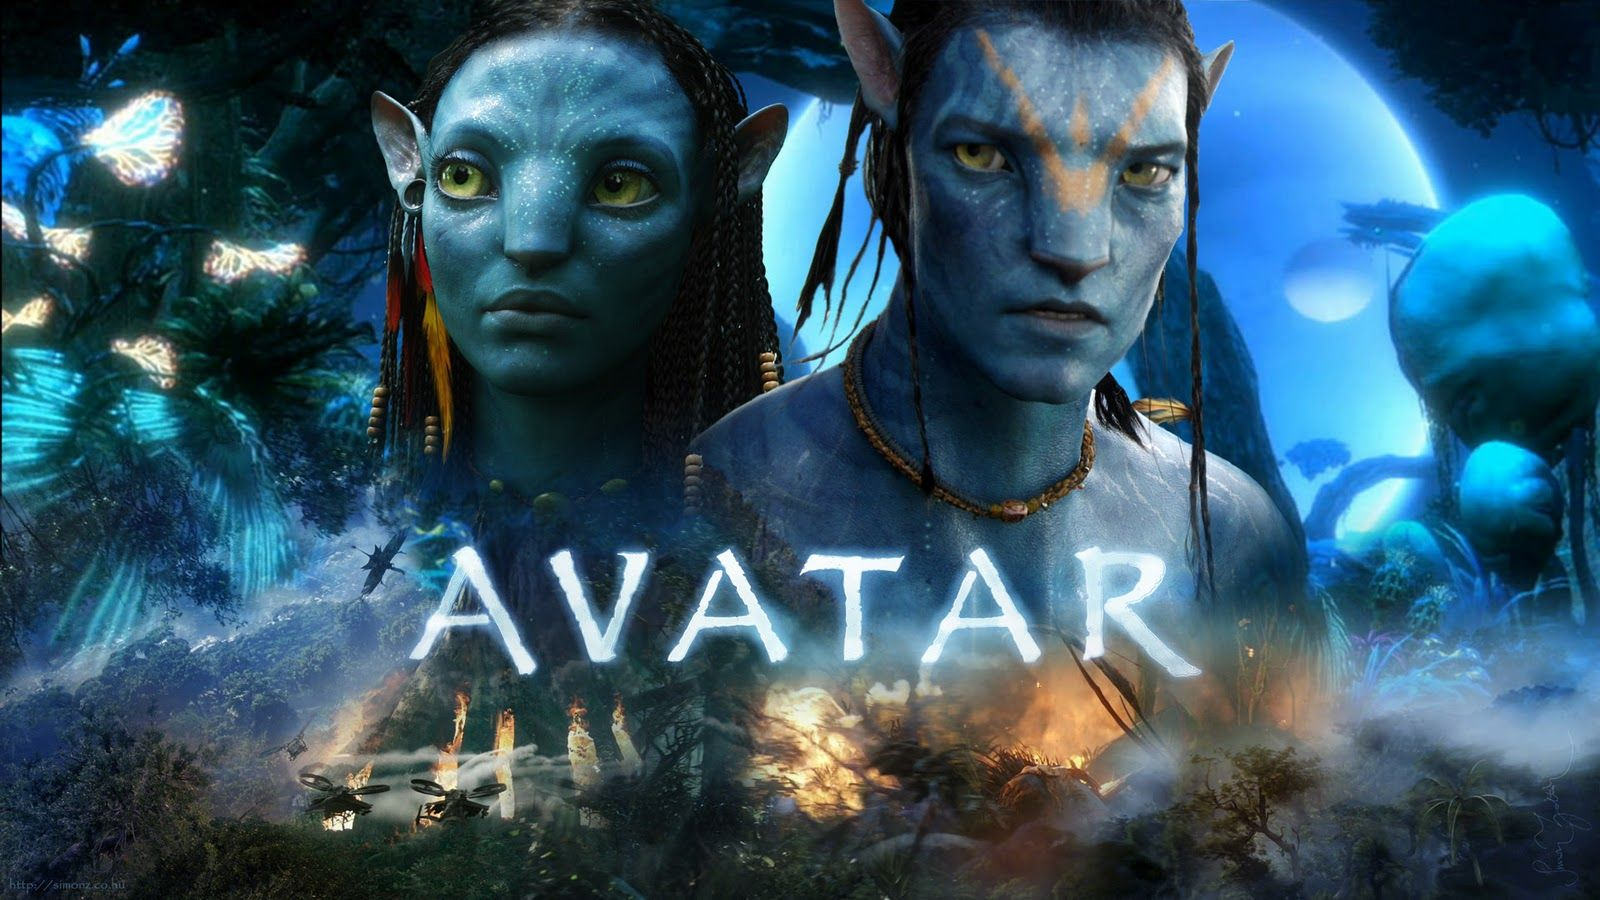 hd movie wallpapers | avatar movie poster 1920 x 1080 hd avatar